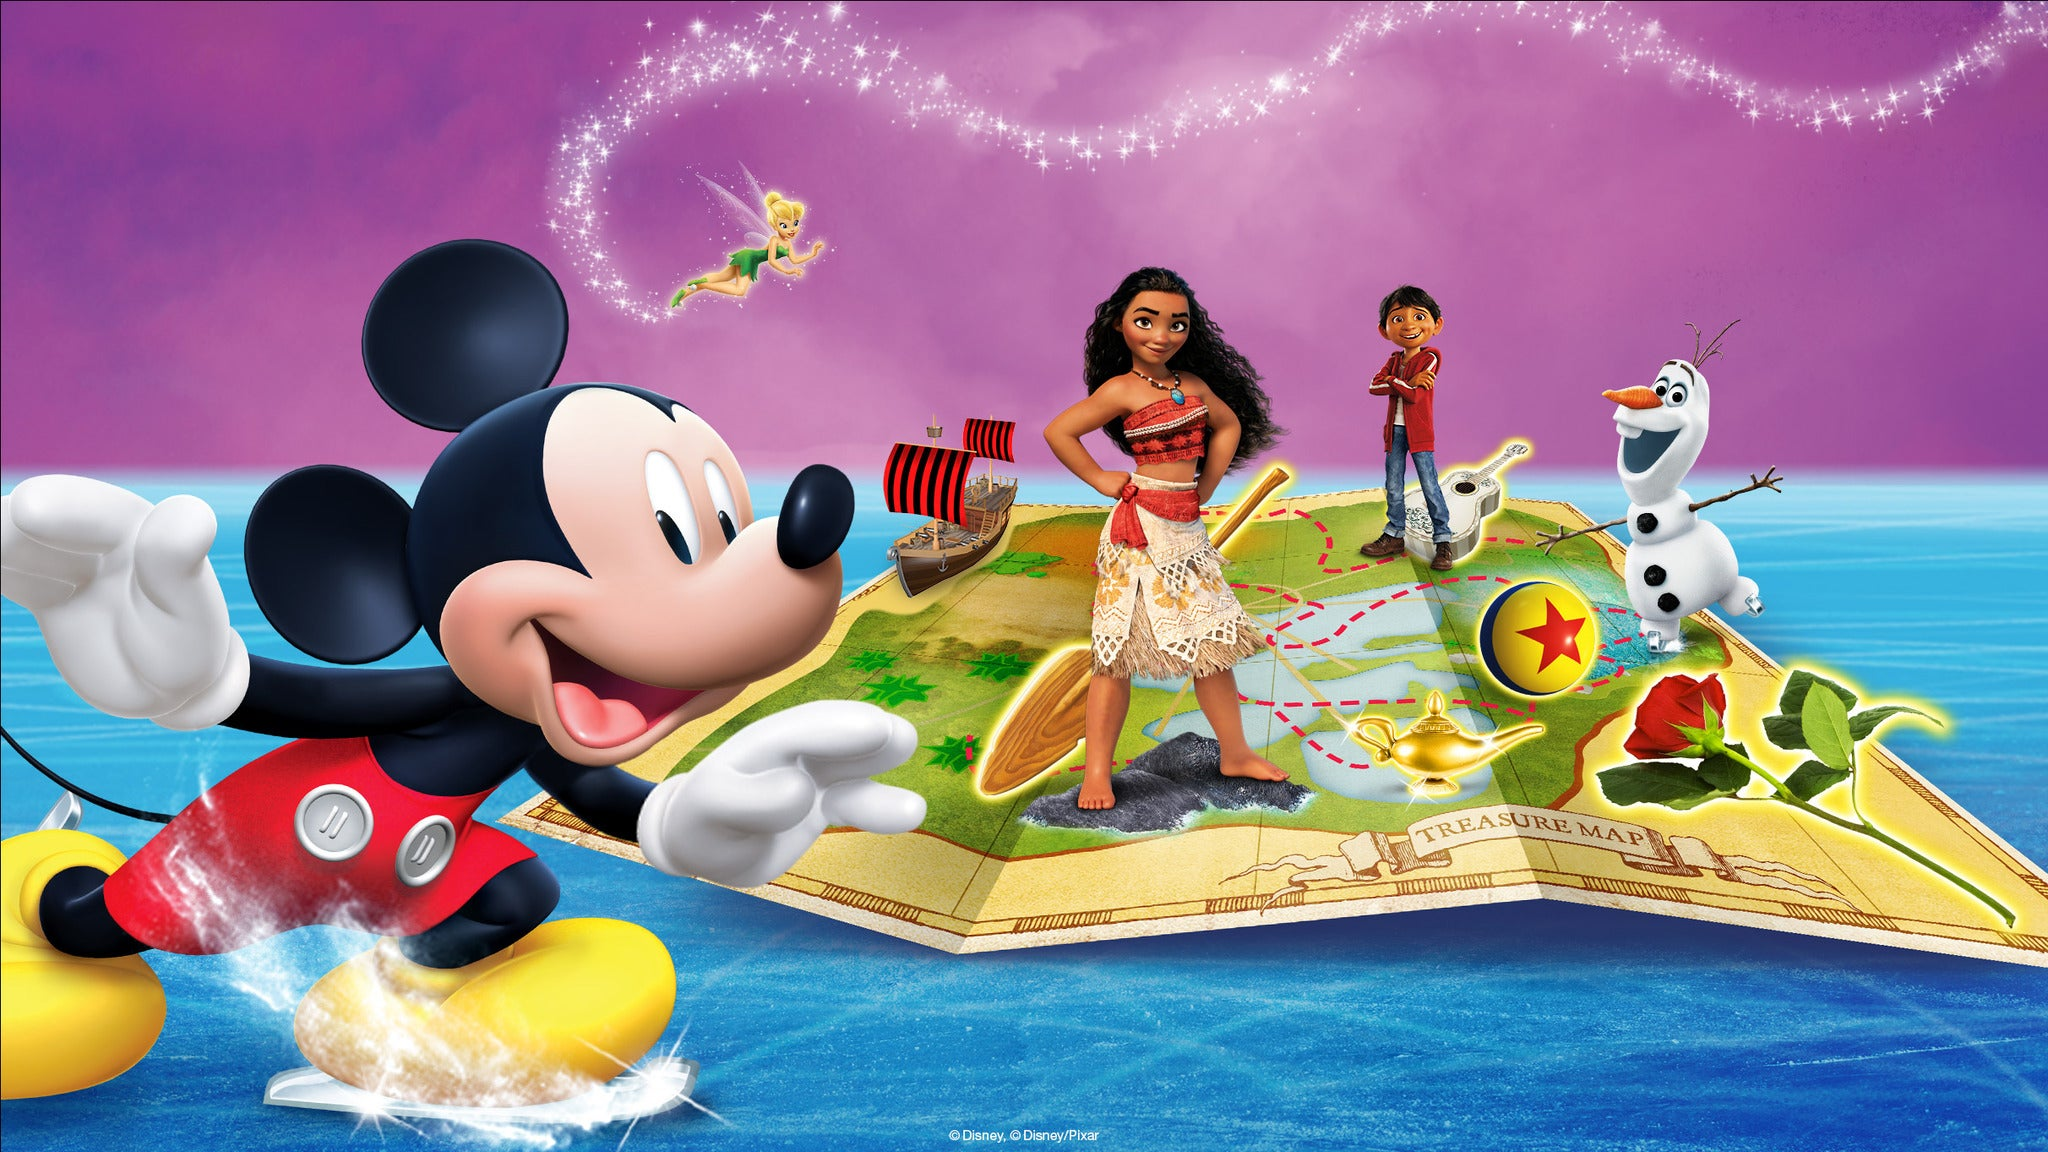 SORRY, THIS EVENT IS NO LONGER ACTIVE<br>Disney On Ice: Mickey's Search Party - Philadelphia, PA 19148